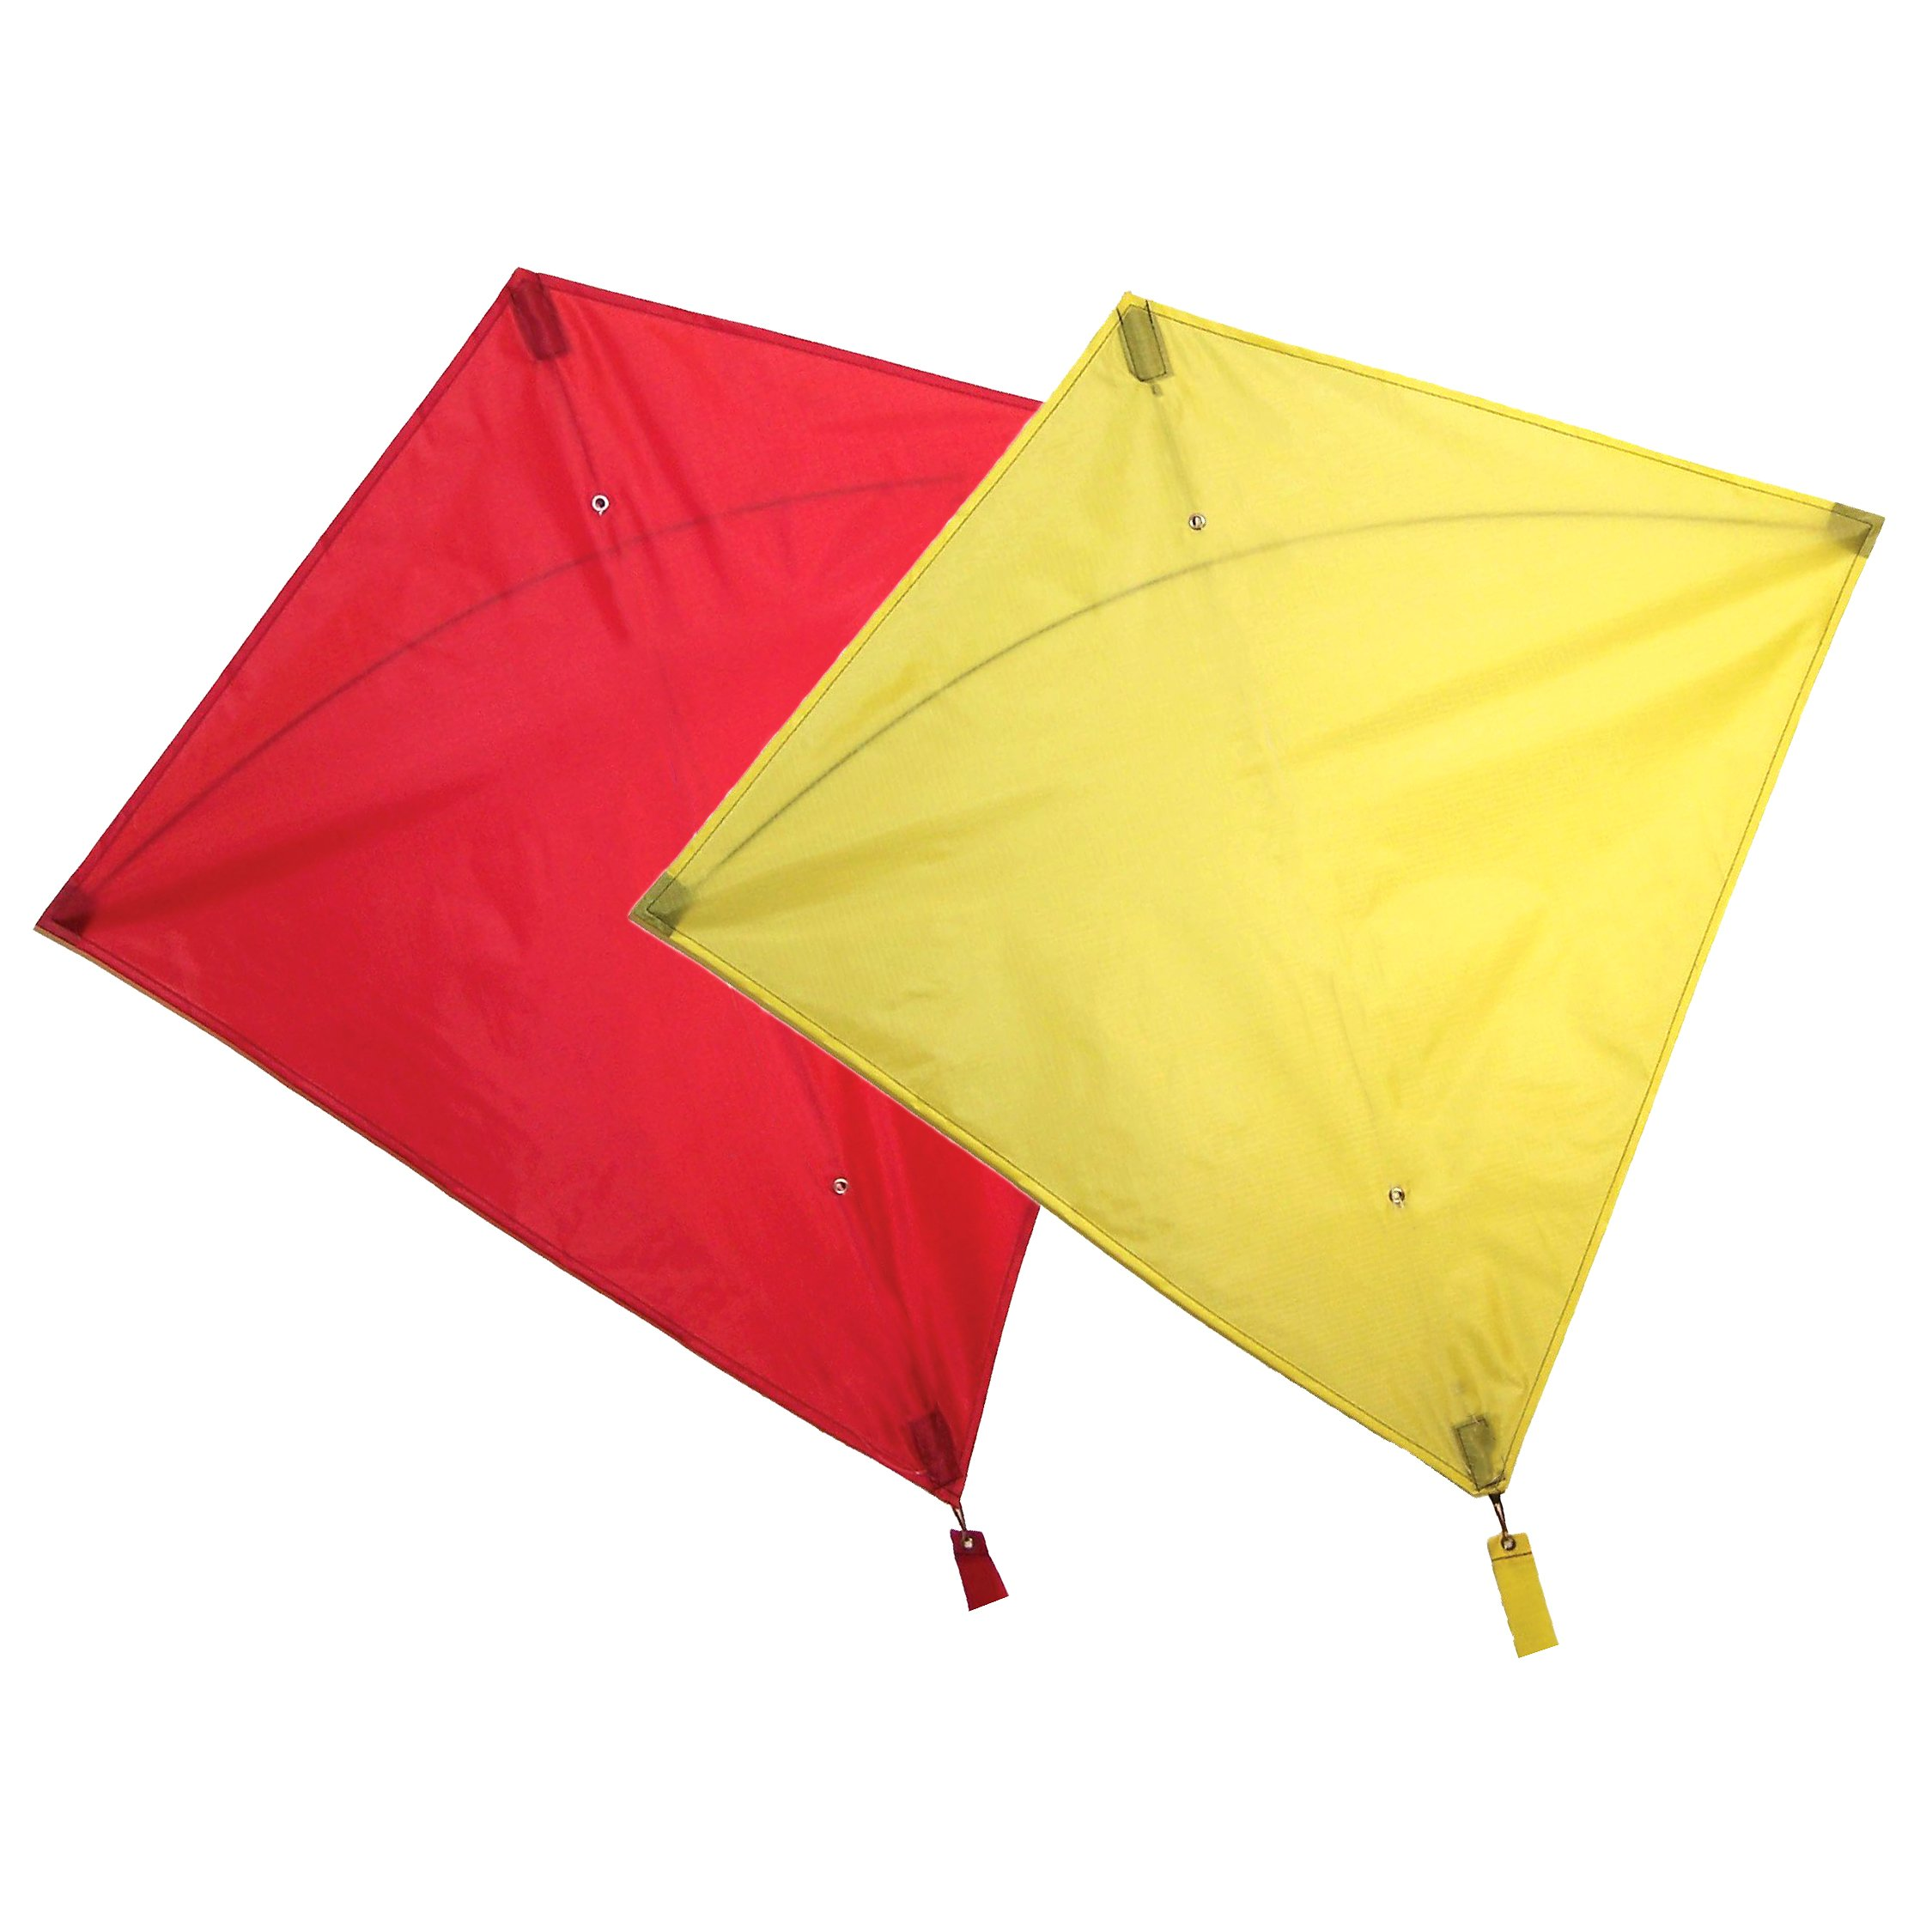 Maven Gifts: In The Breeze 2-Pack Kite Bundle – 30-Inch Red Colorfly Diamond Kite with 30-Inch Yellow Colorfly Diamond Kite – Great for Beginners and Kids